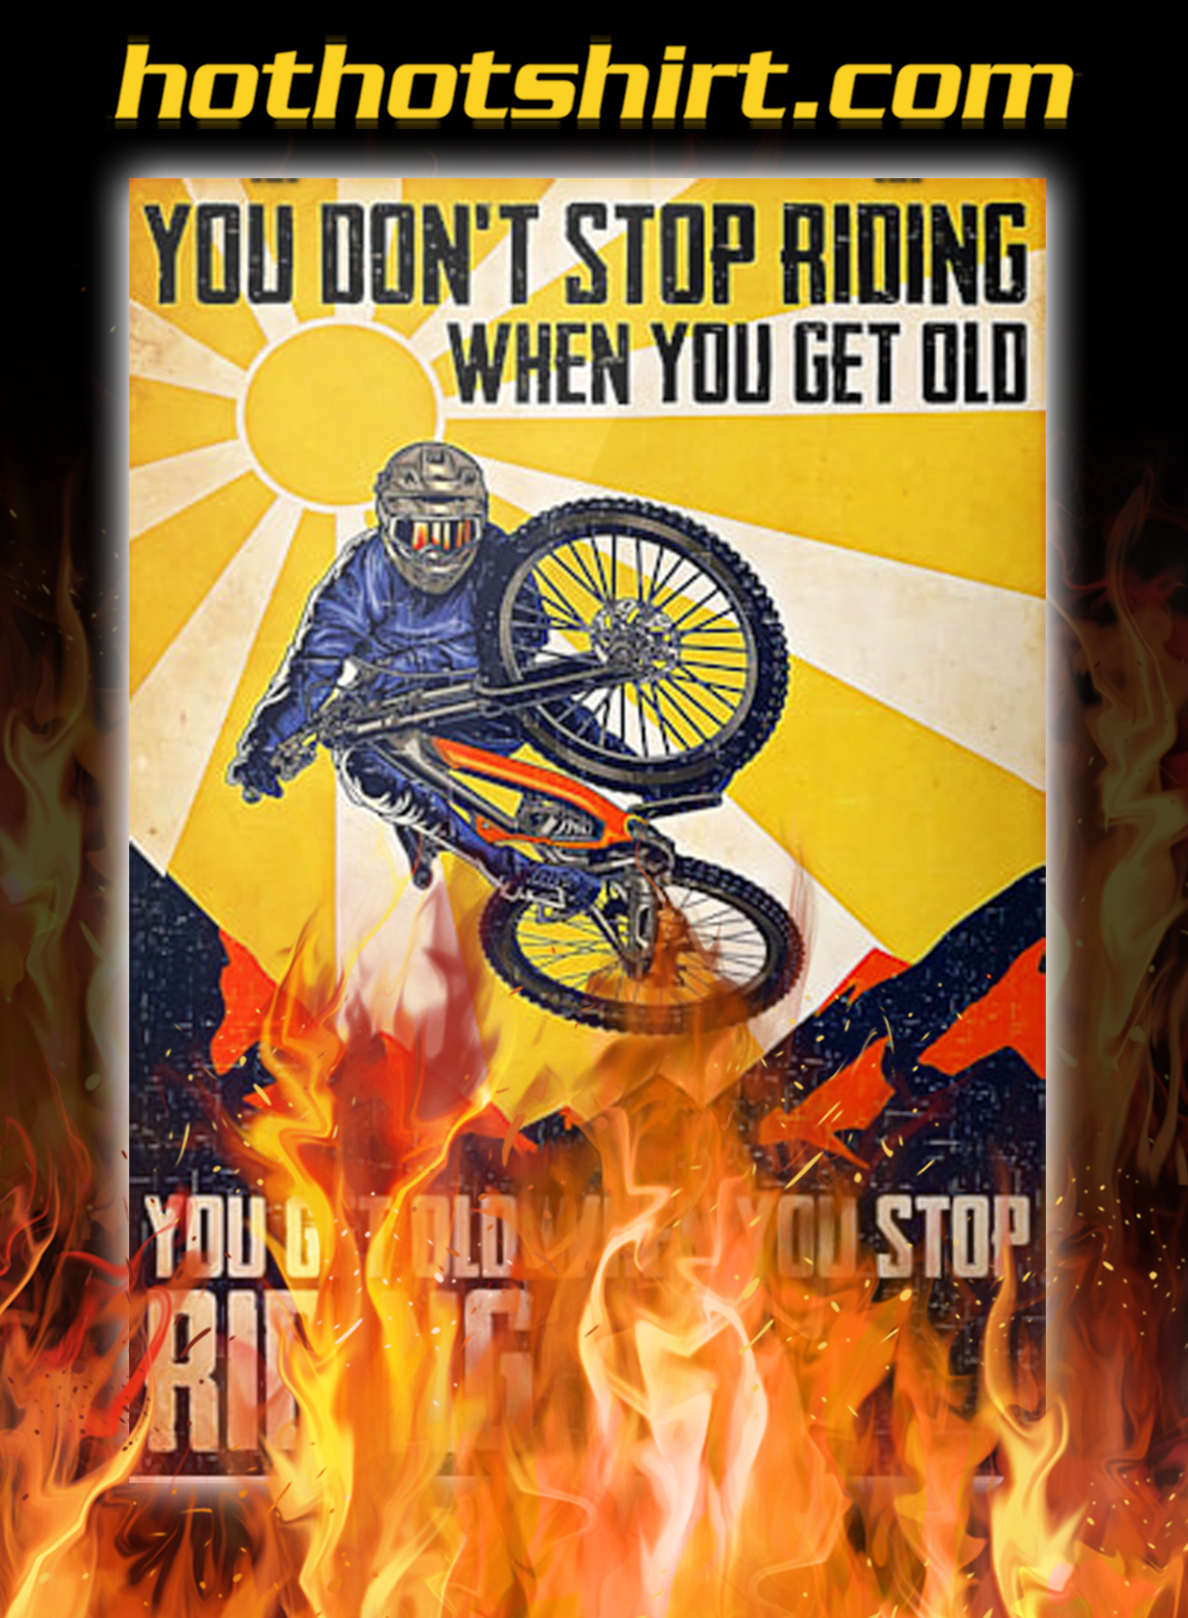 Road bike you don't stop riding when you get old poster - A2